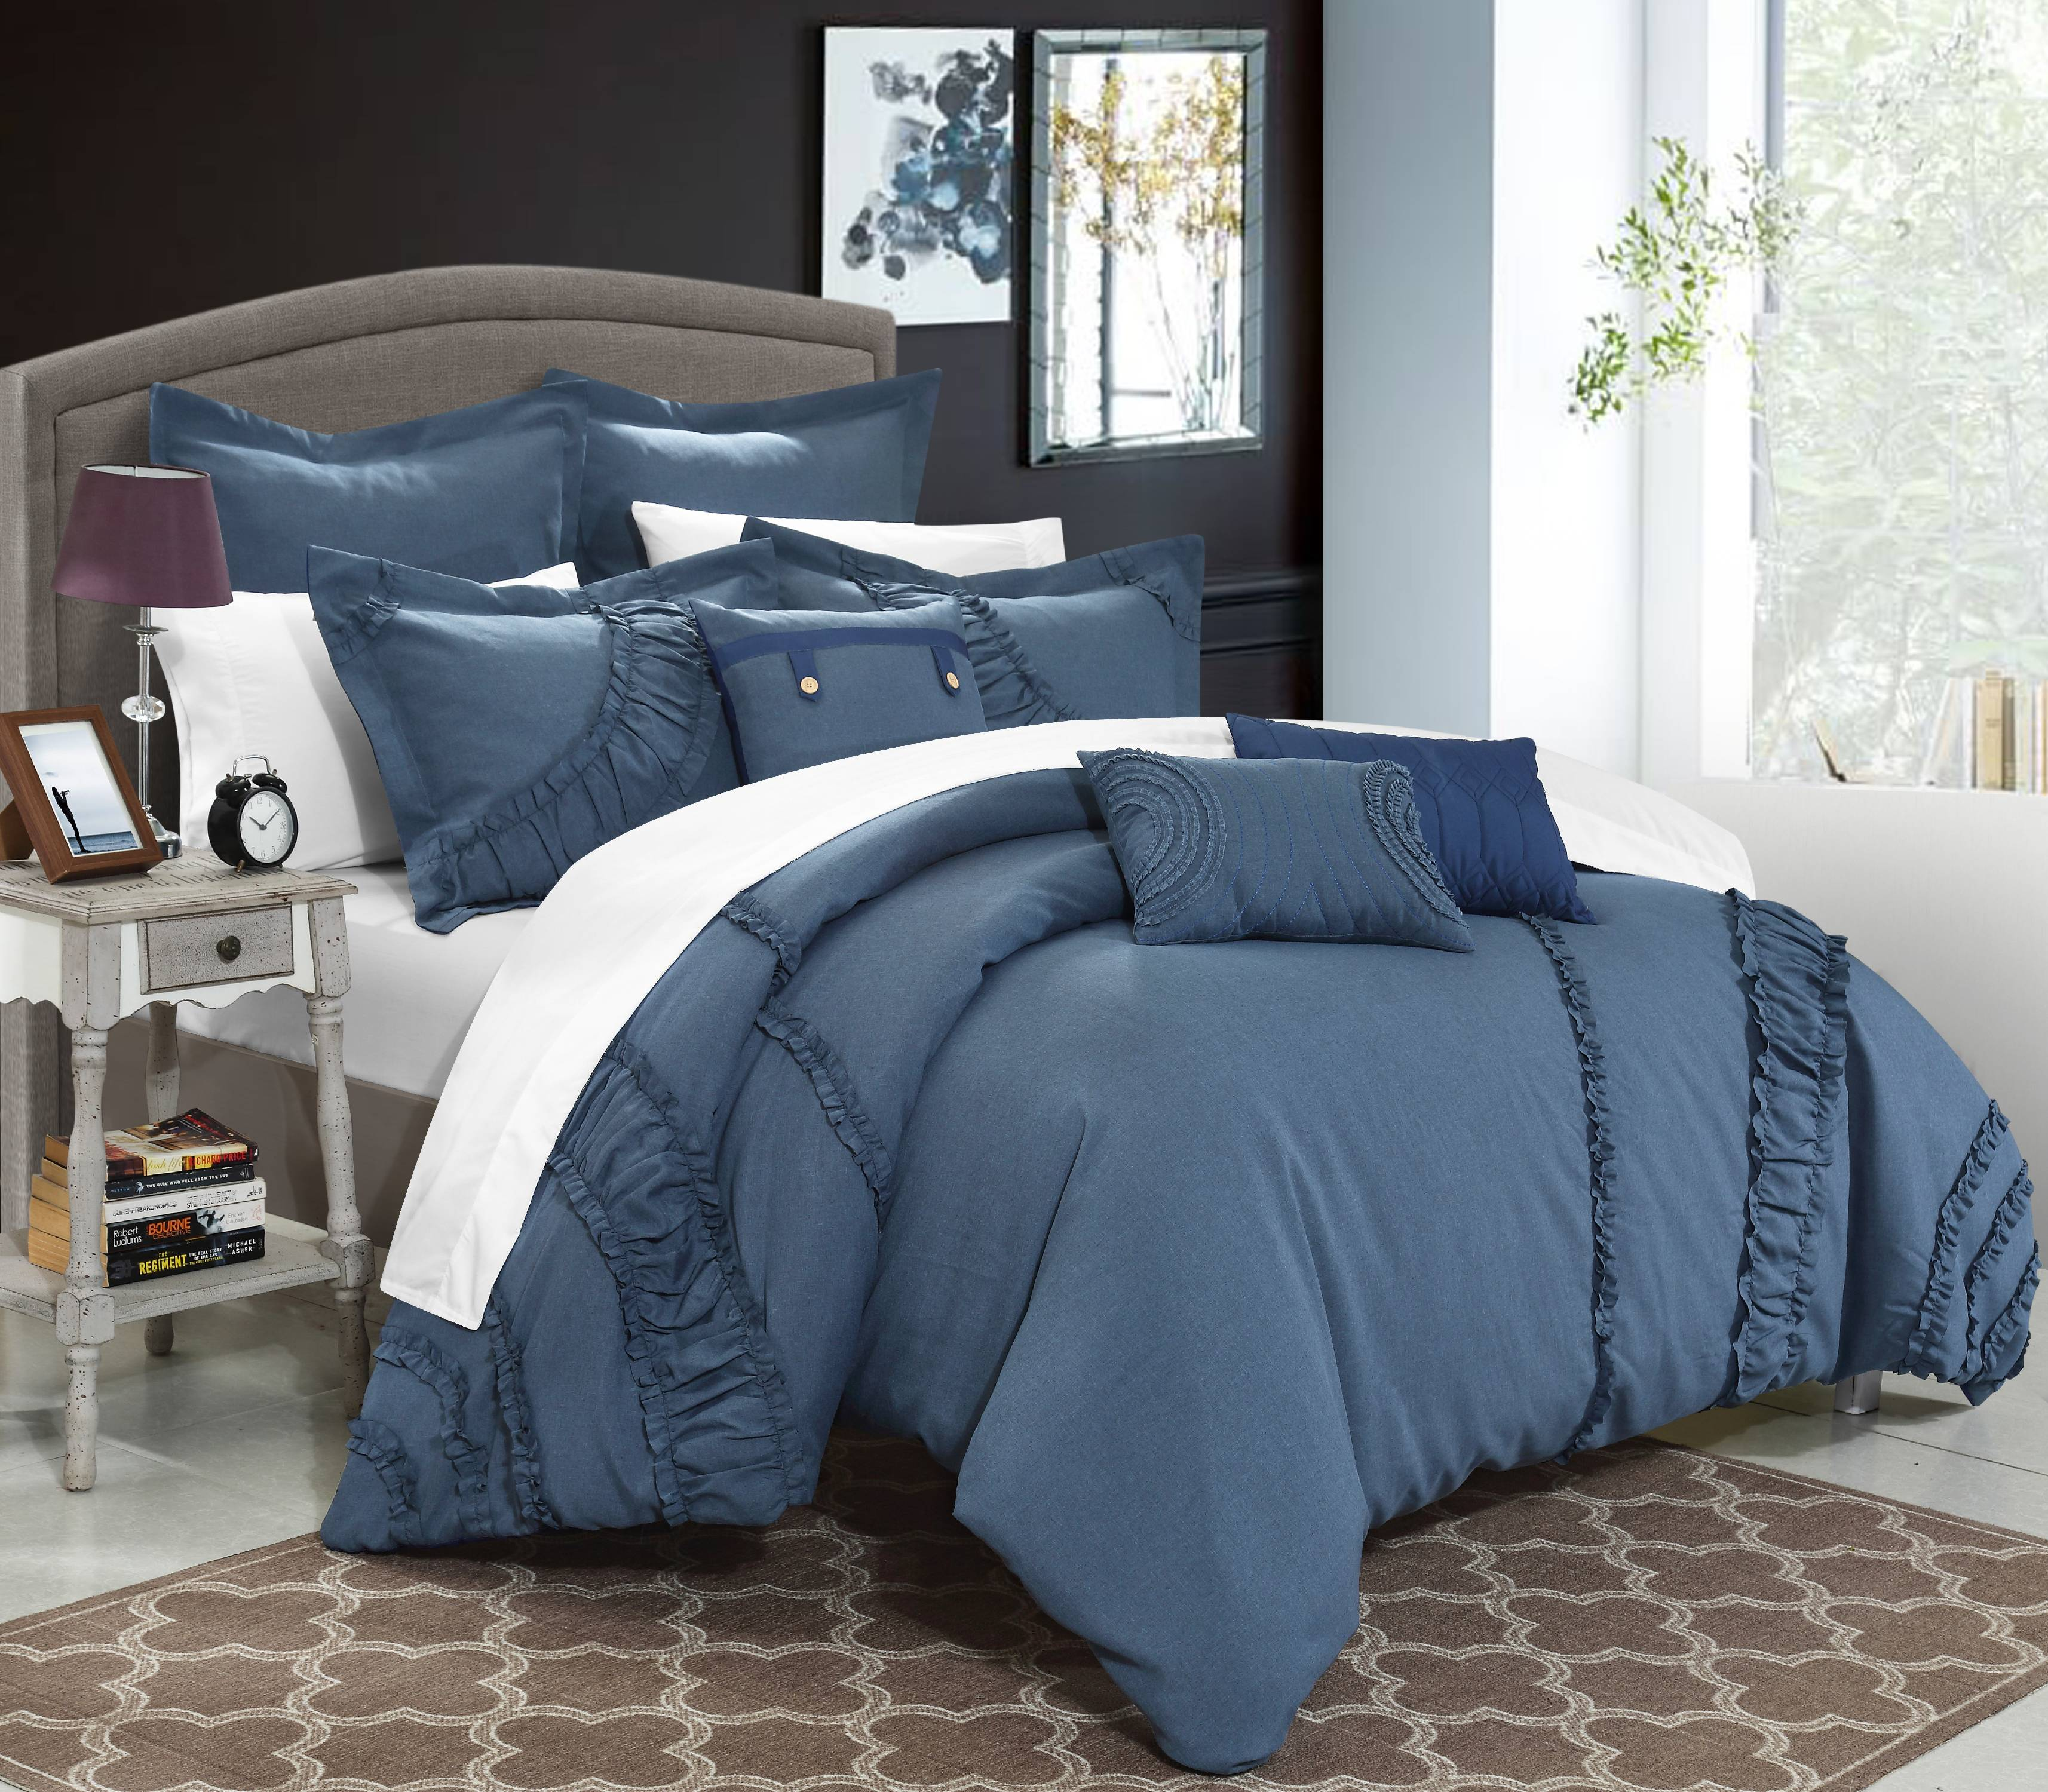 Chic Home 8 Piece Dearly NEW FAUX LINEN FABRIC COLLECTION OVERSIZED AND  OVERFILLED Embroidered GEOMETRIC